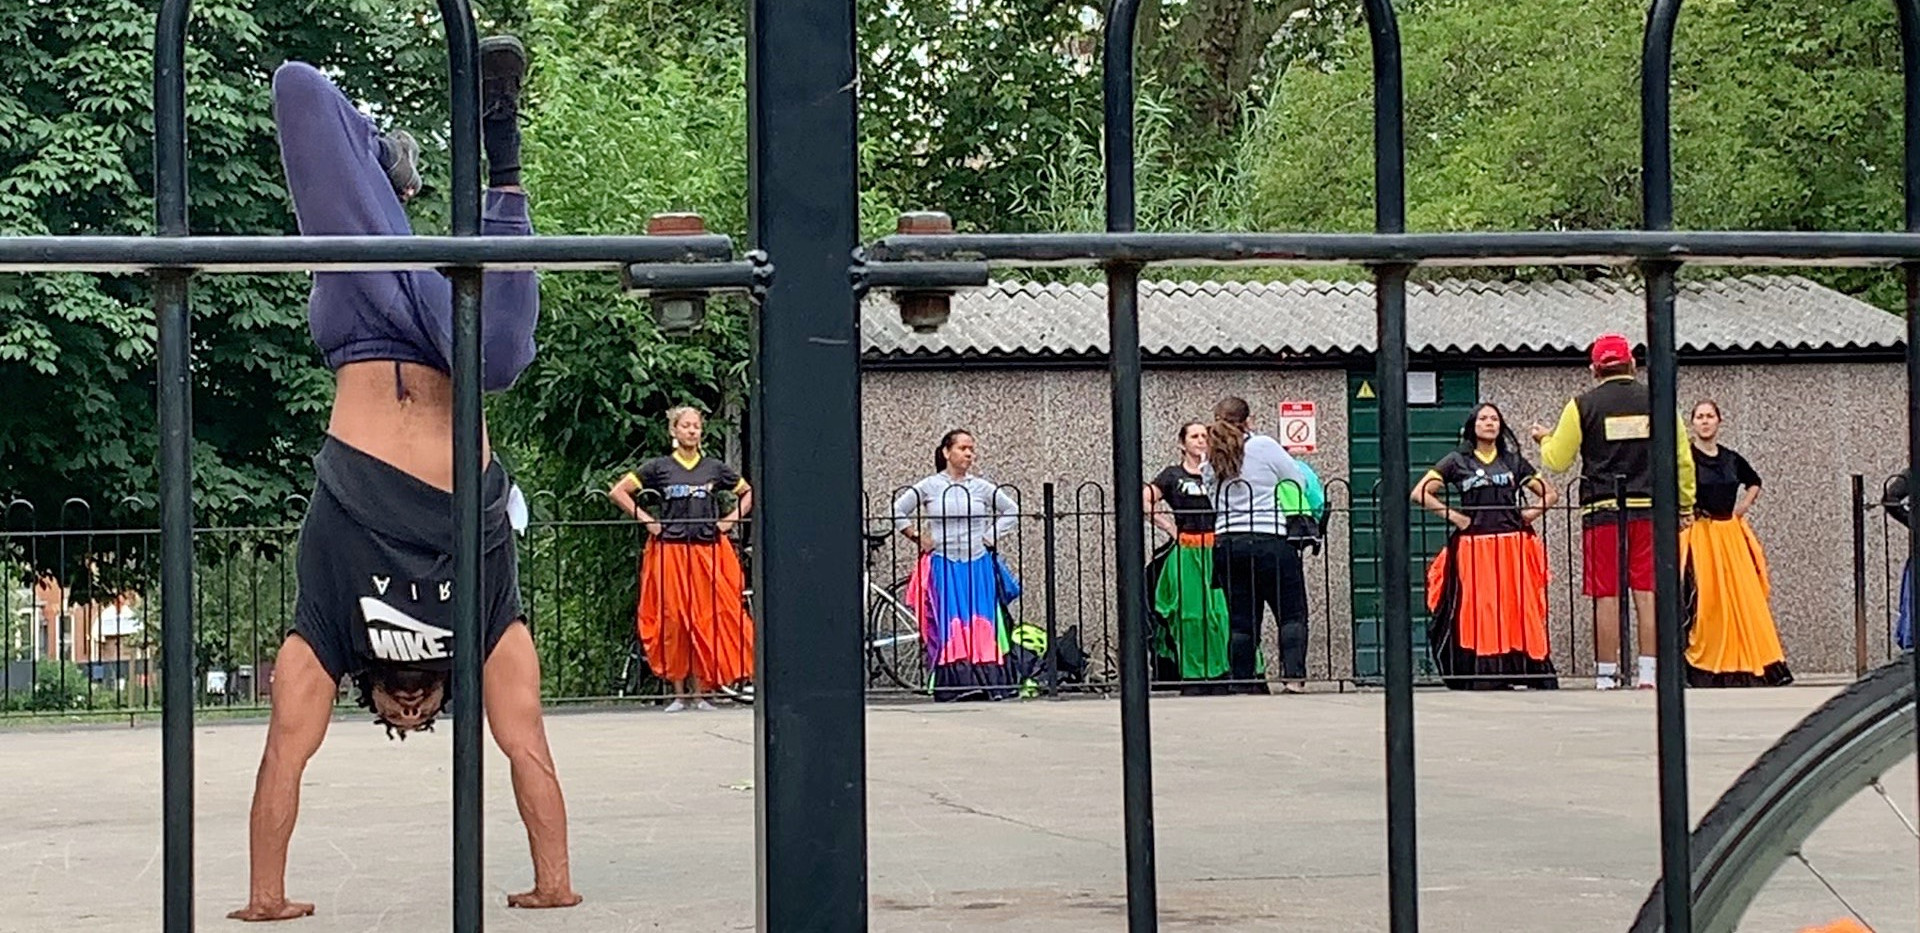 Capoeira Angola for all in North London